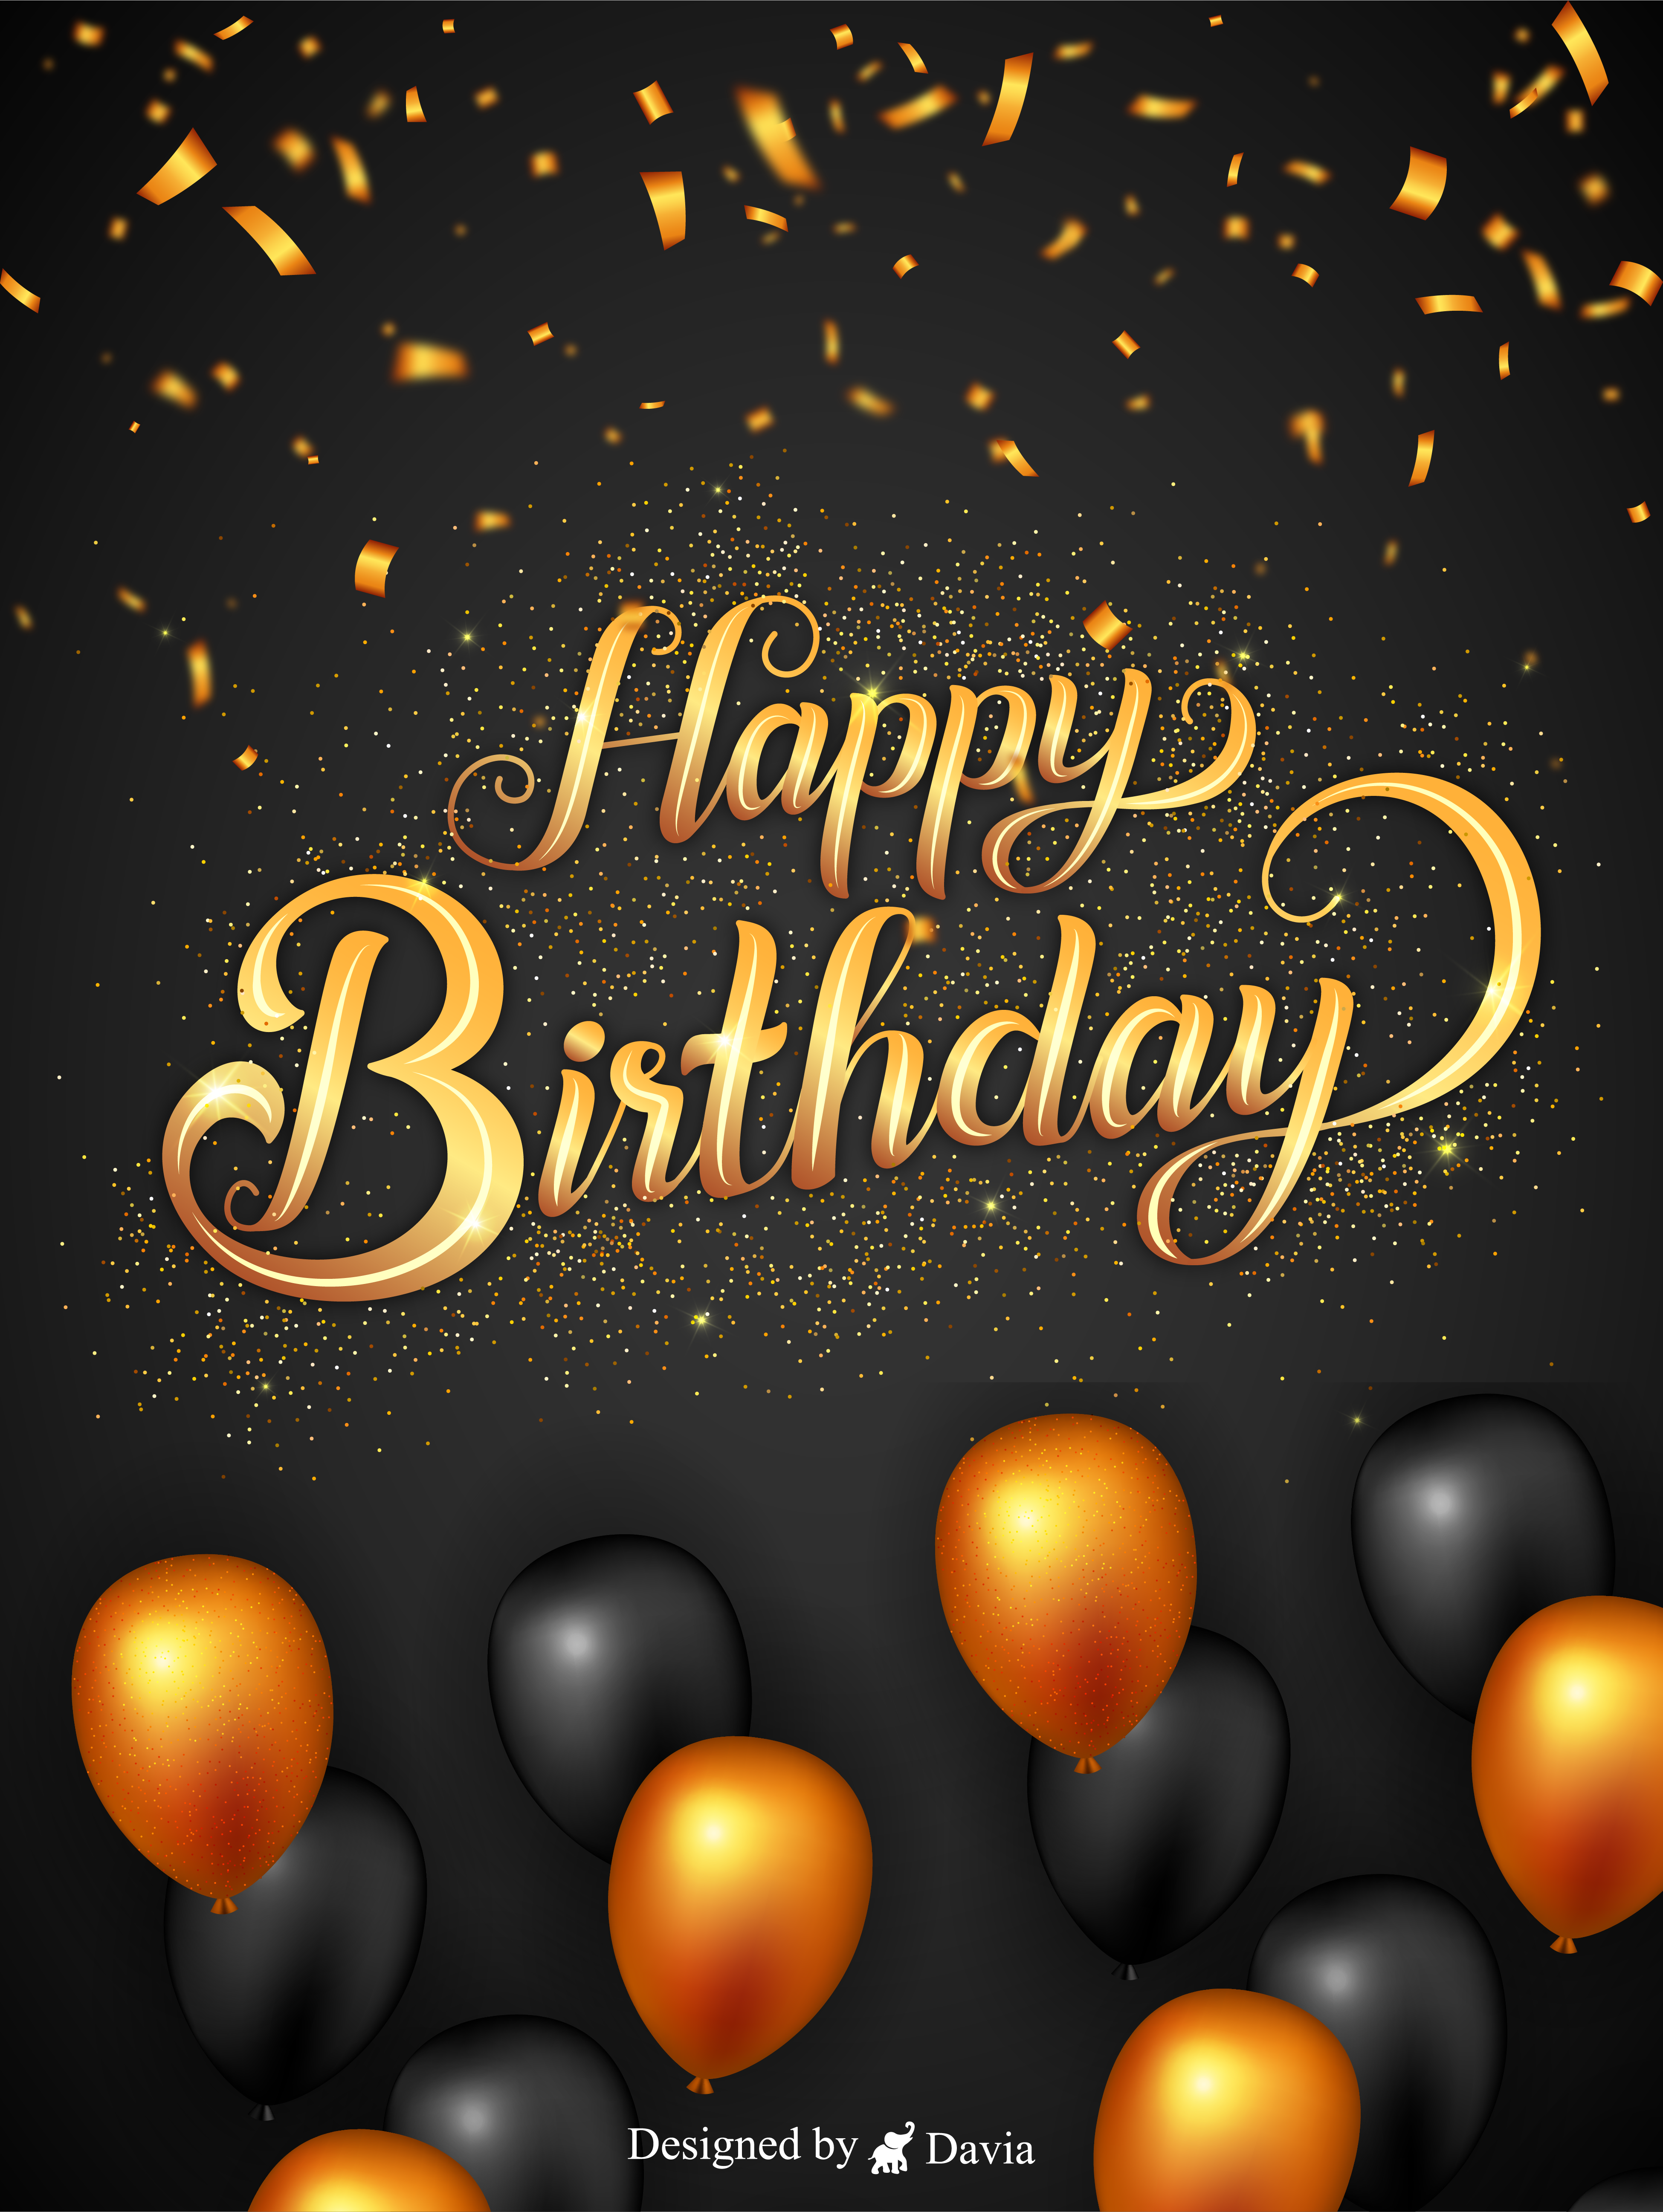 Gold Black Birthday Balloons Happy Birthday To Him Cards Birthday Greeting Cards By Davia In 2021 Happy Birthday Man Happy Birthday To Him Birthday Greeting Cards